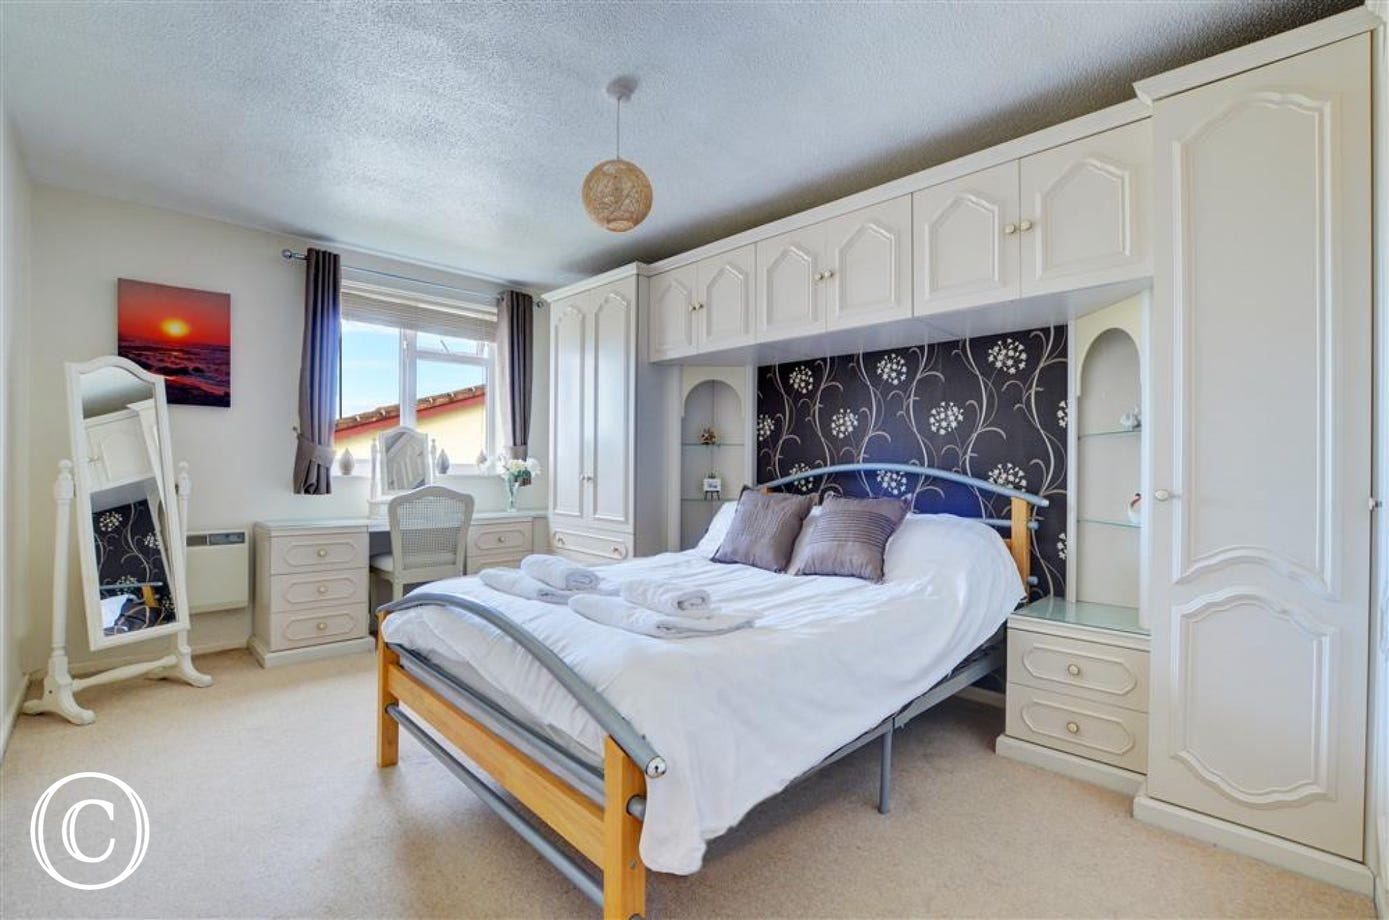 The master bedroom is spacious and has ample wardrobe space for your belongings